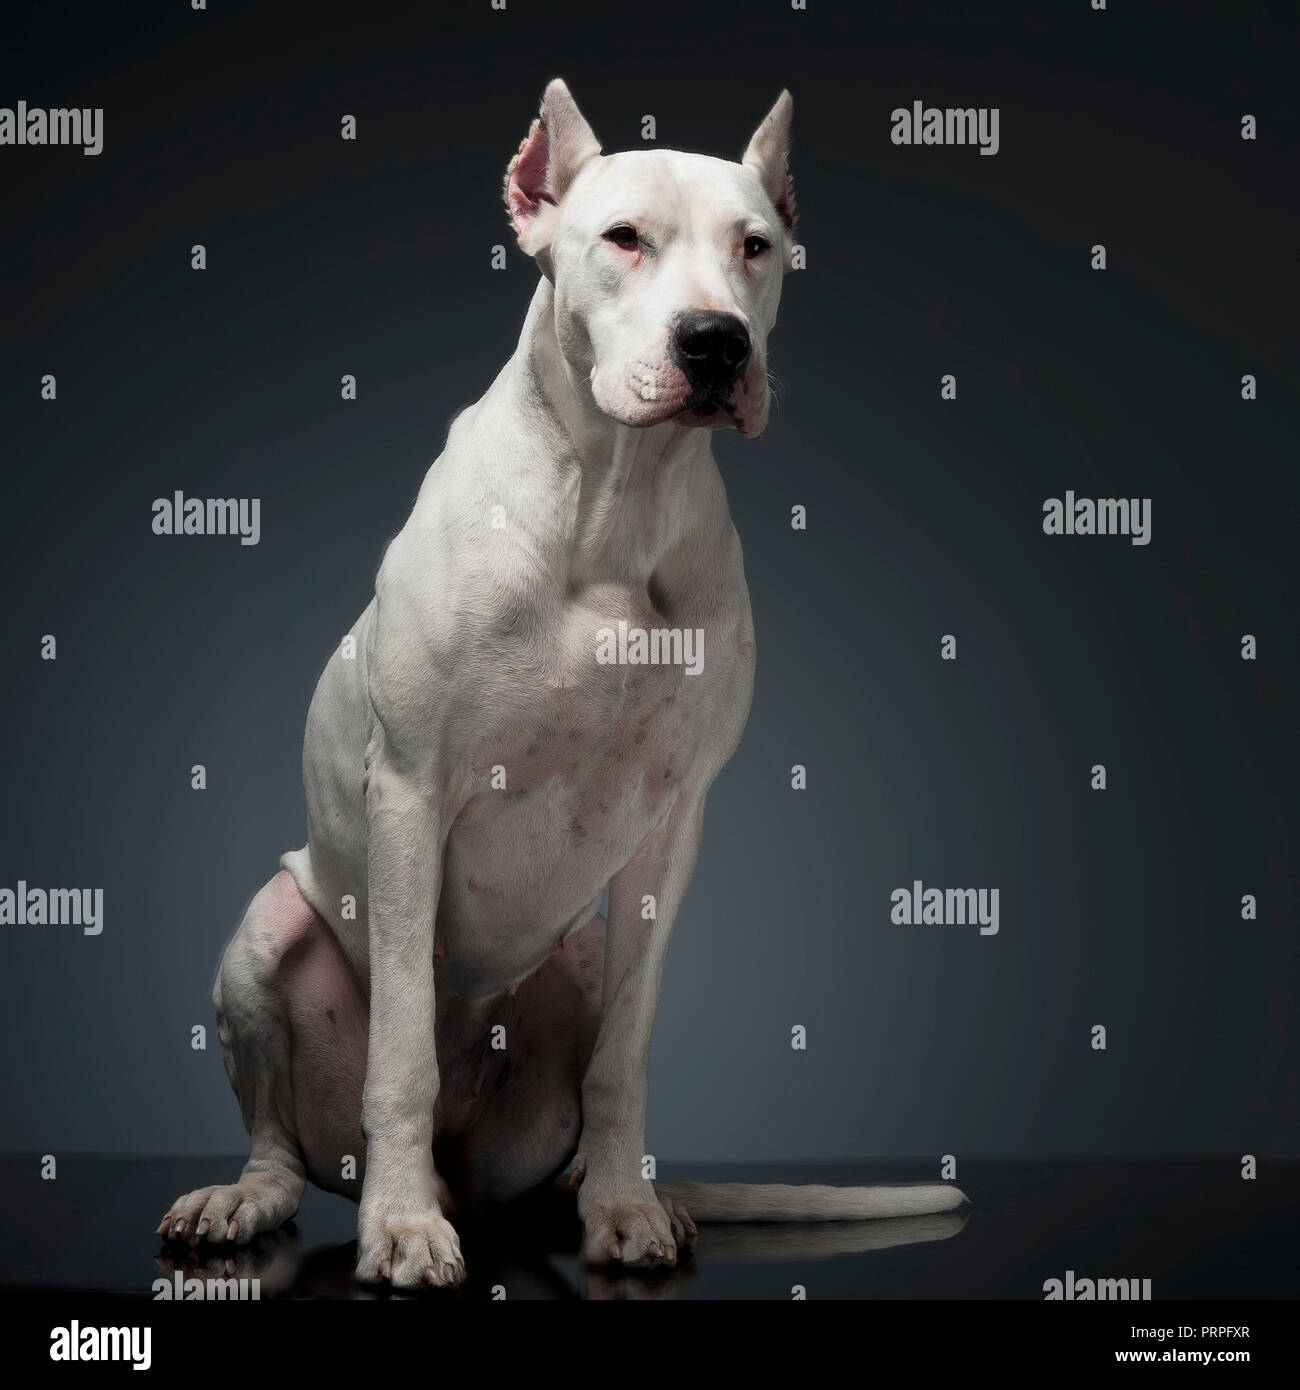 Dog argentin assis sur la table studio Photo Stock